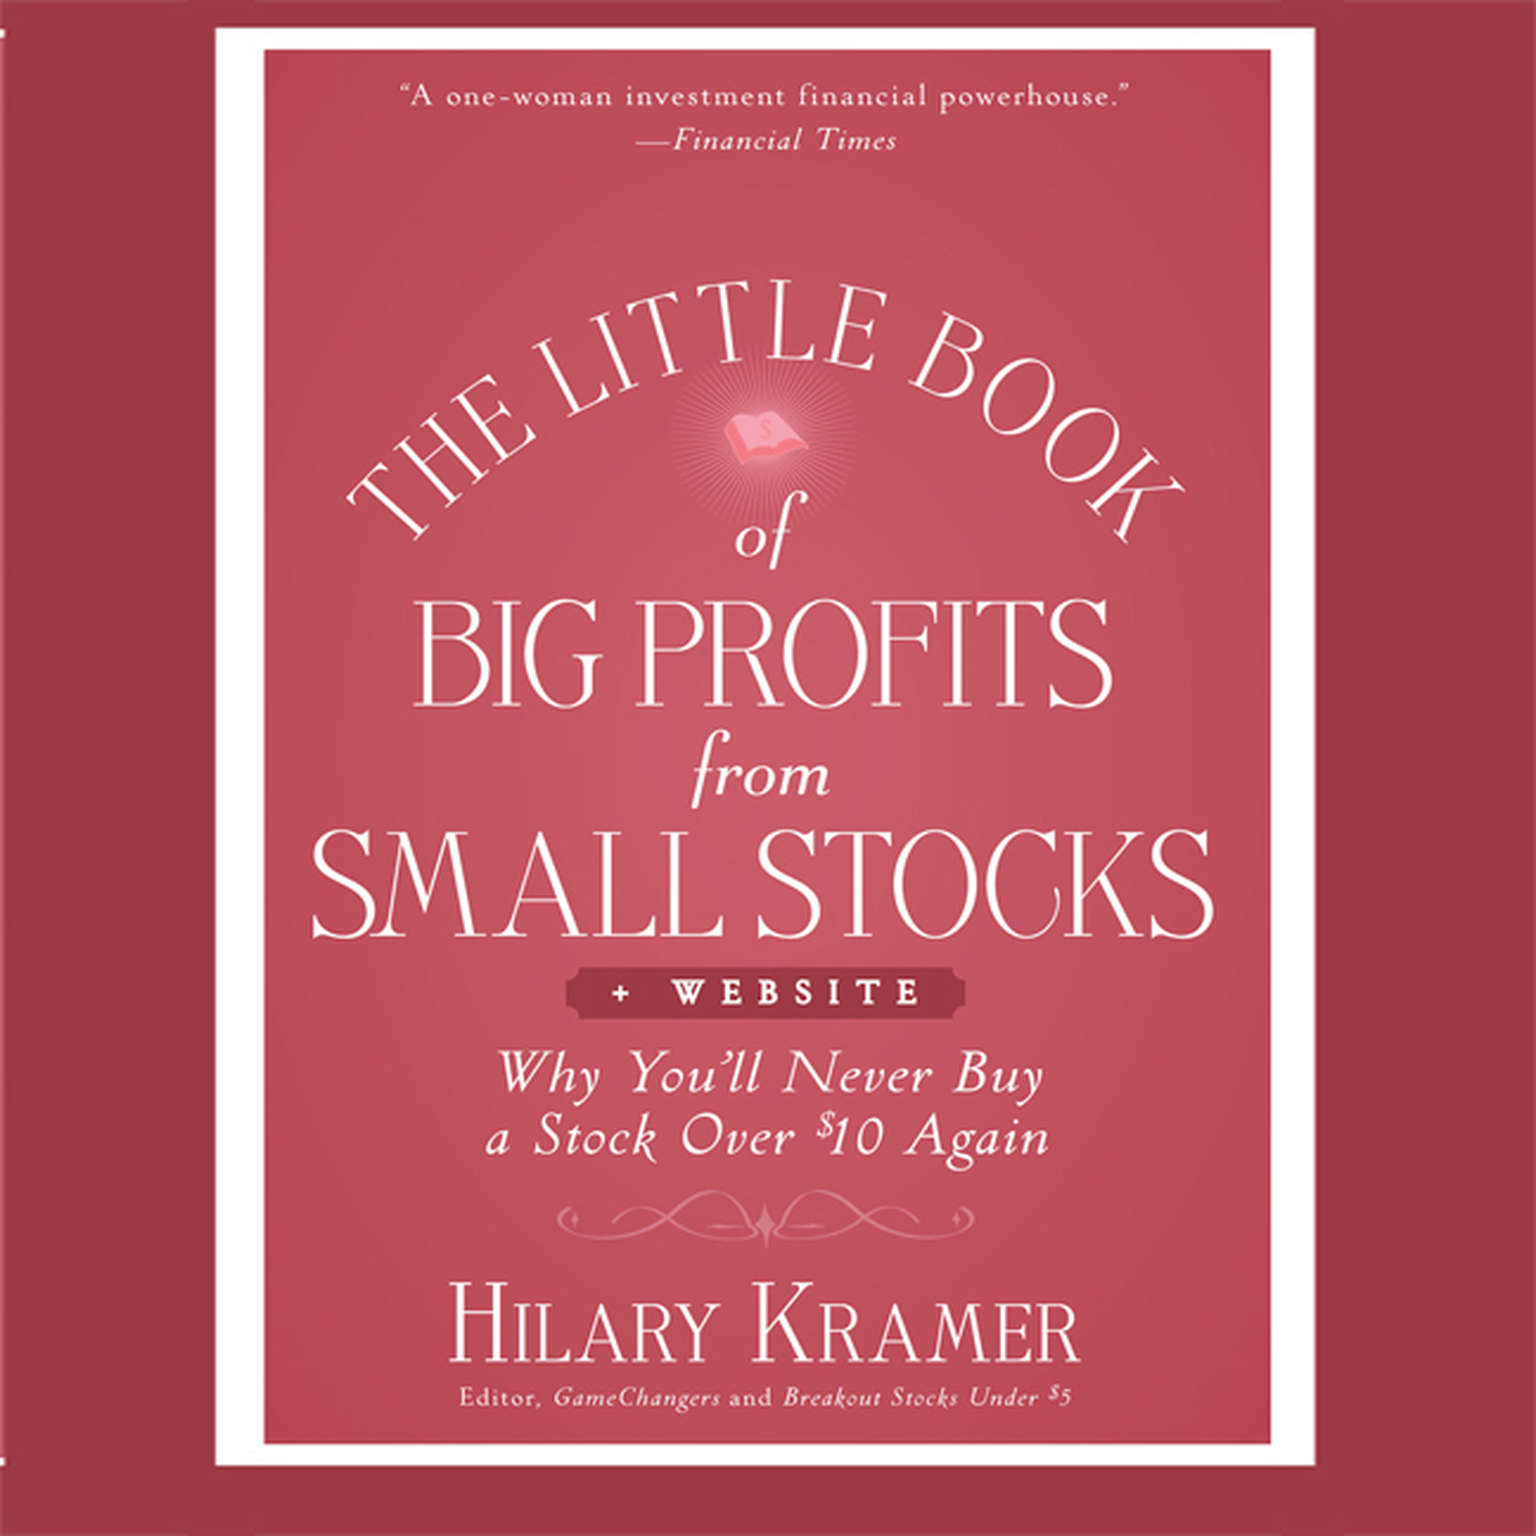 Printable The Little Book of Big Profits from Small Stocks + Website: Why You'll Never Buy a Stock Over $10 Again (Little Books. Big Profits) Audiobook Cover Art